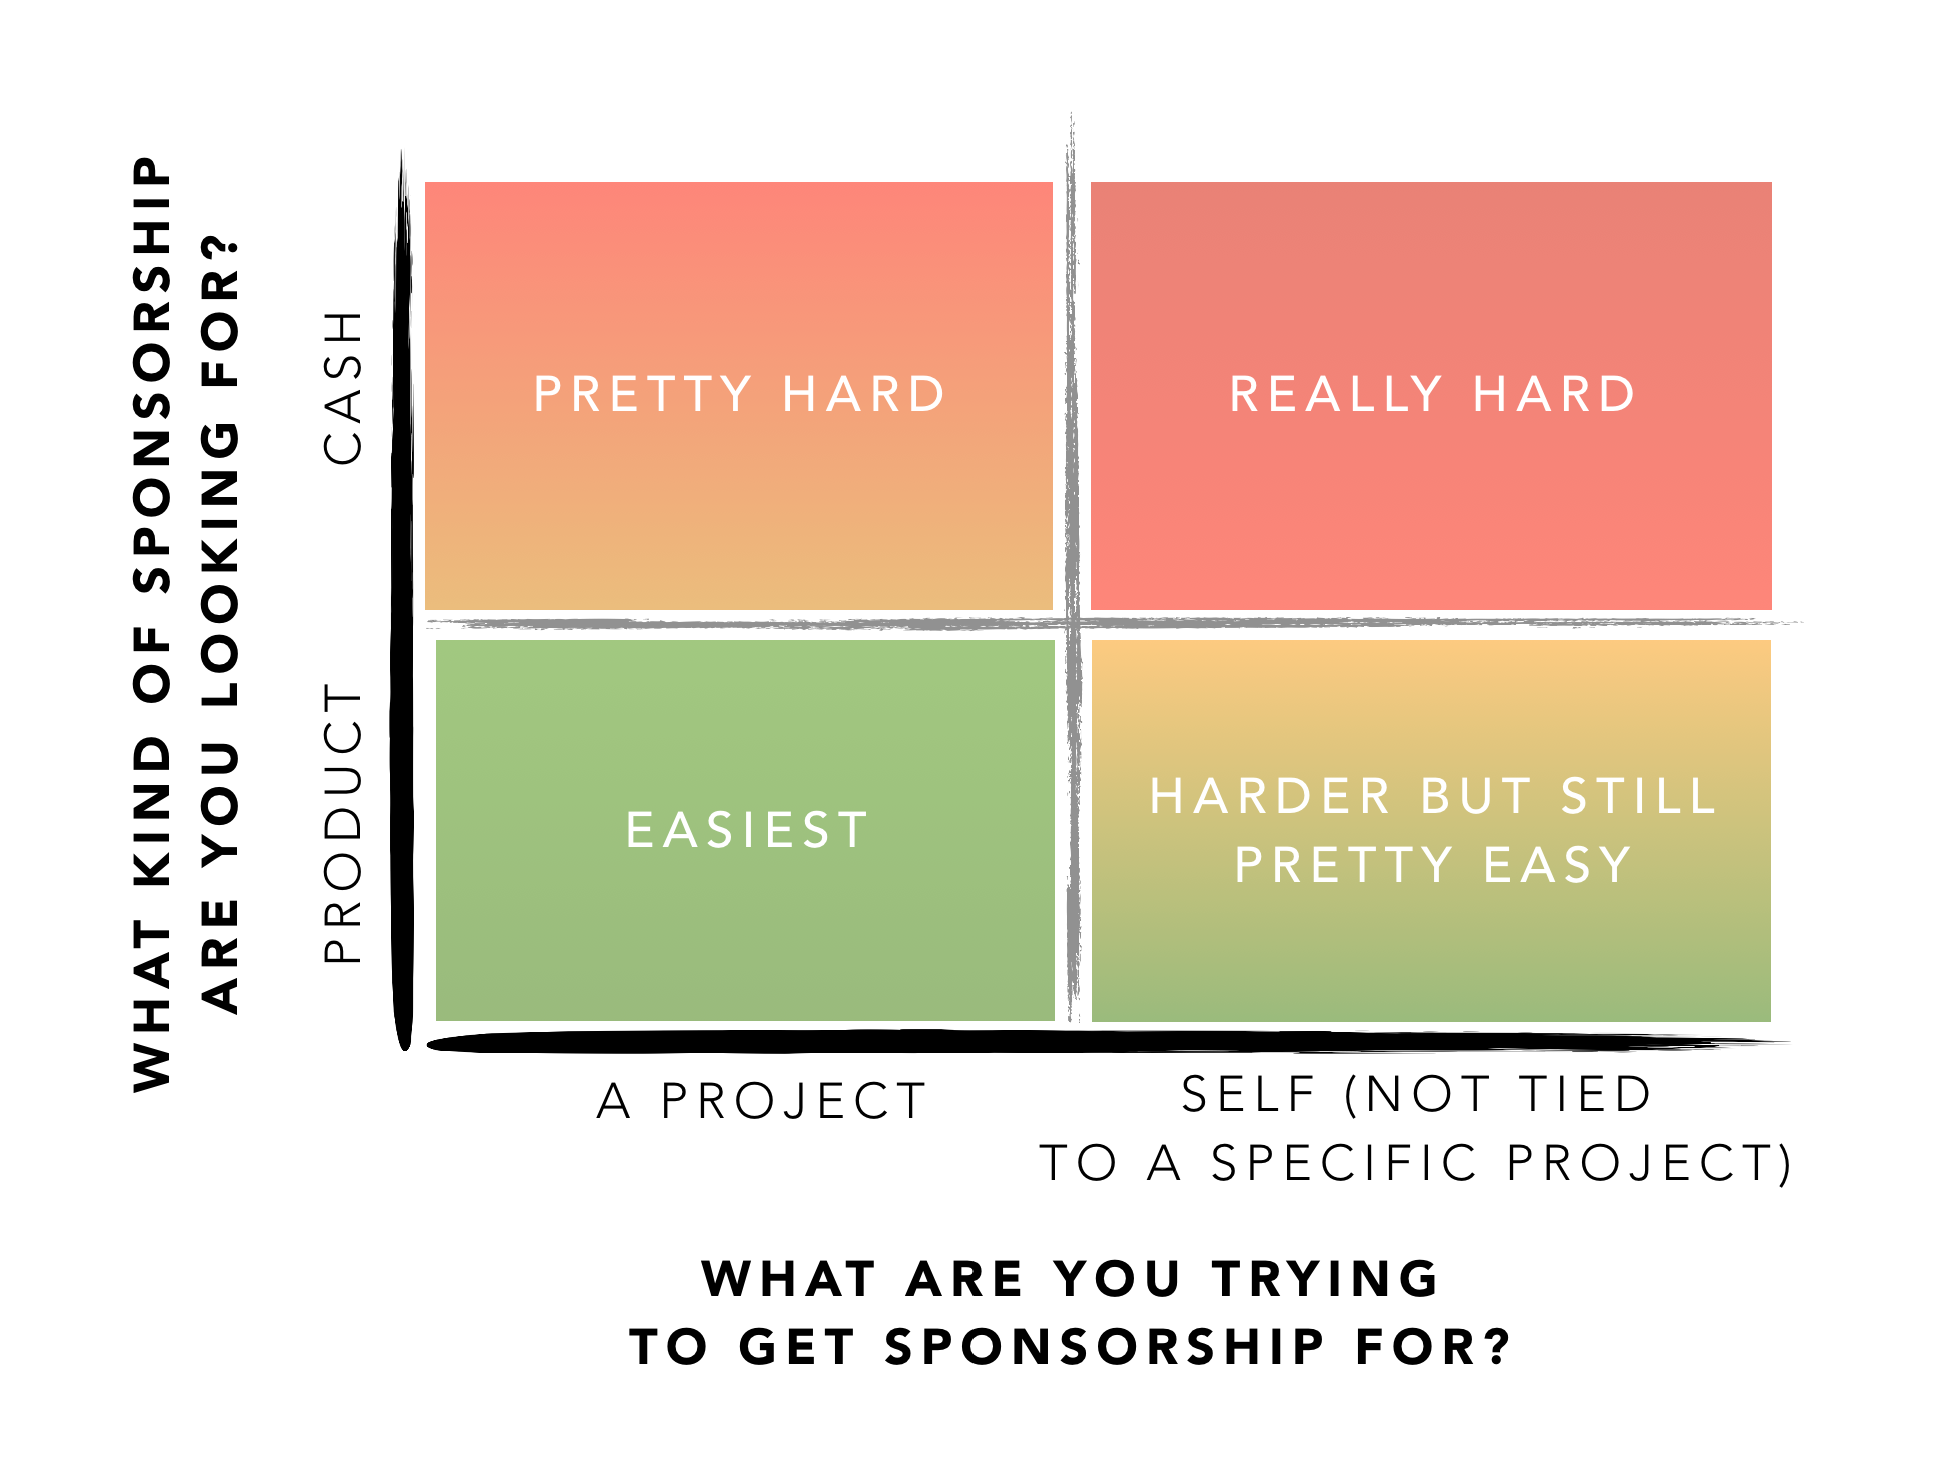 How to think about sponsorship